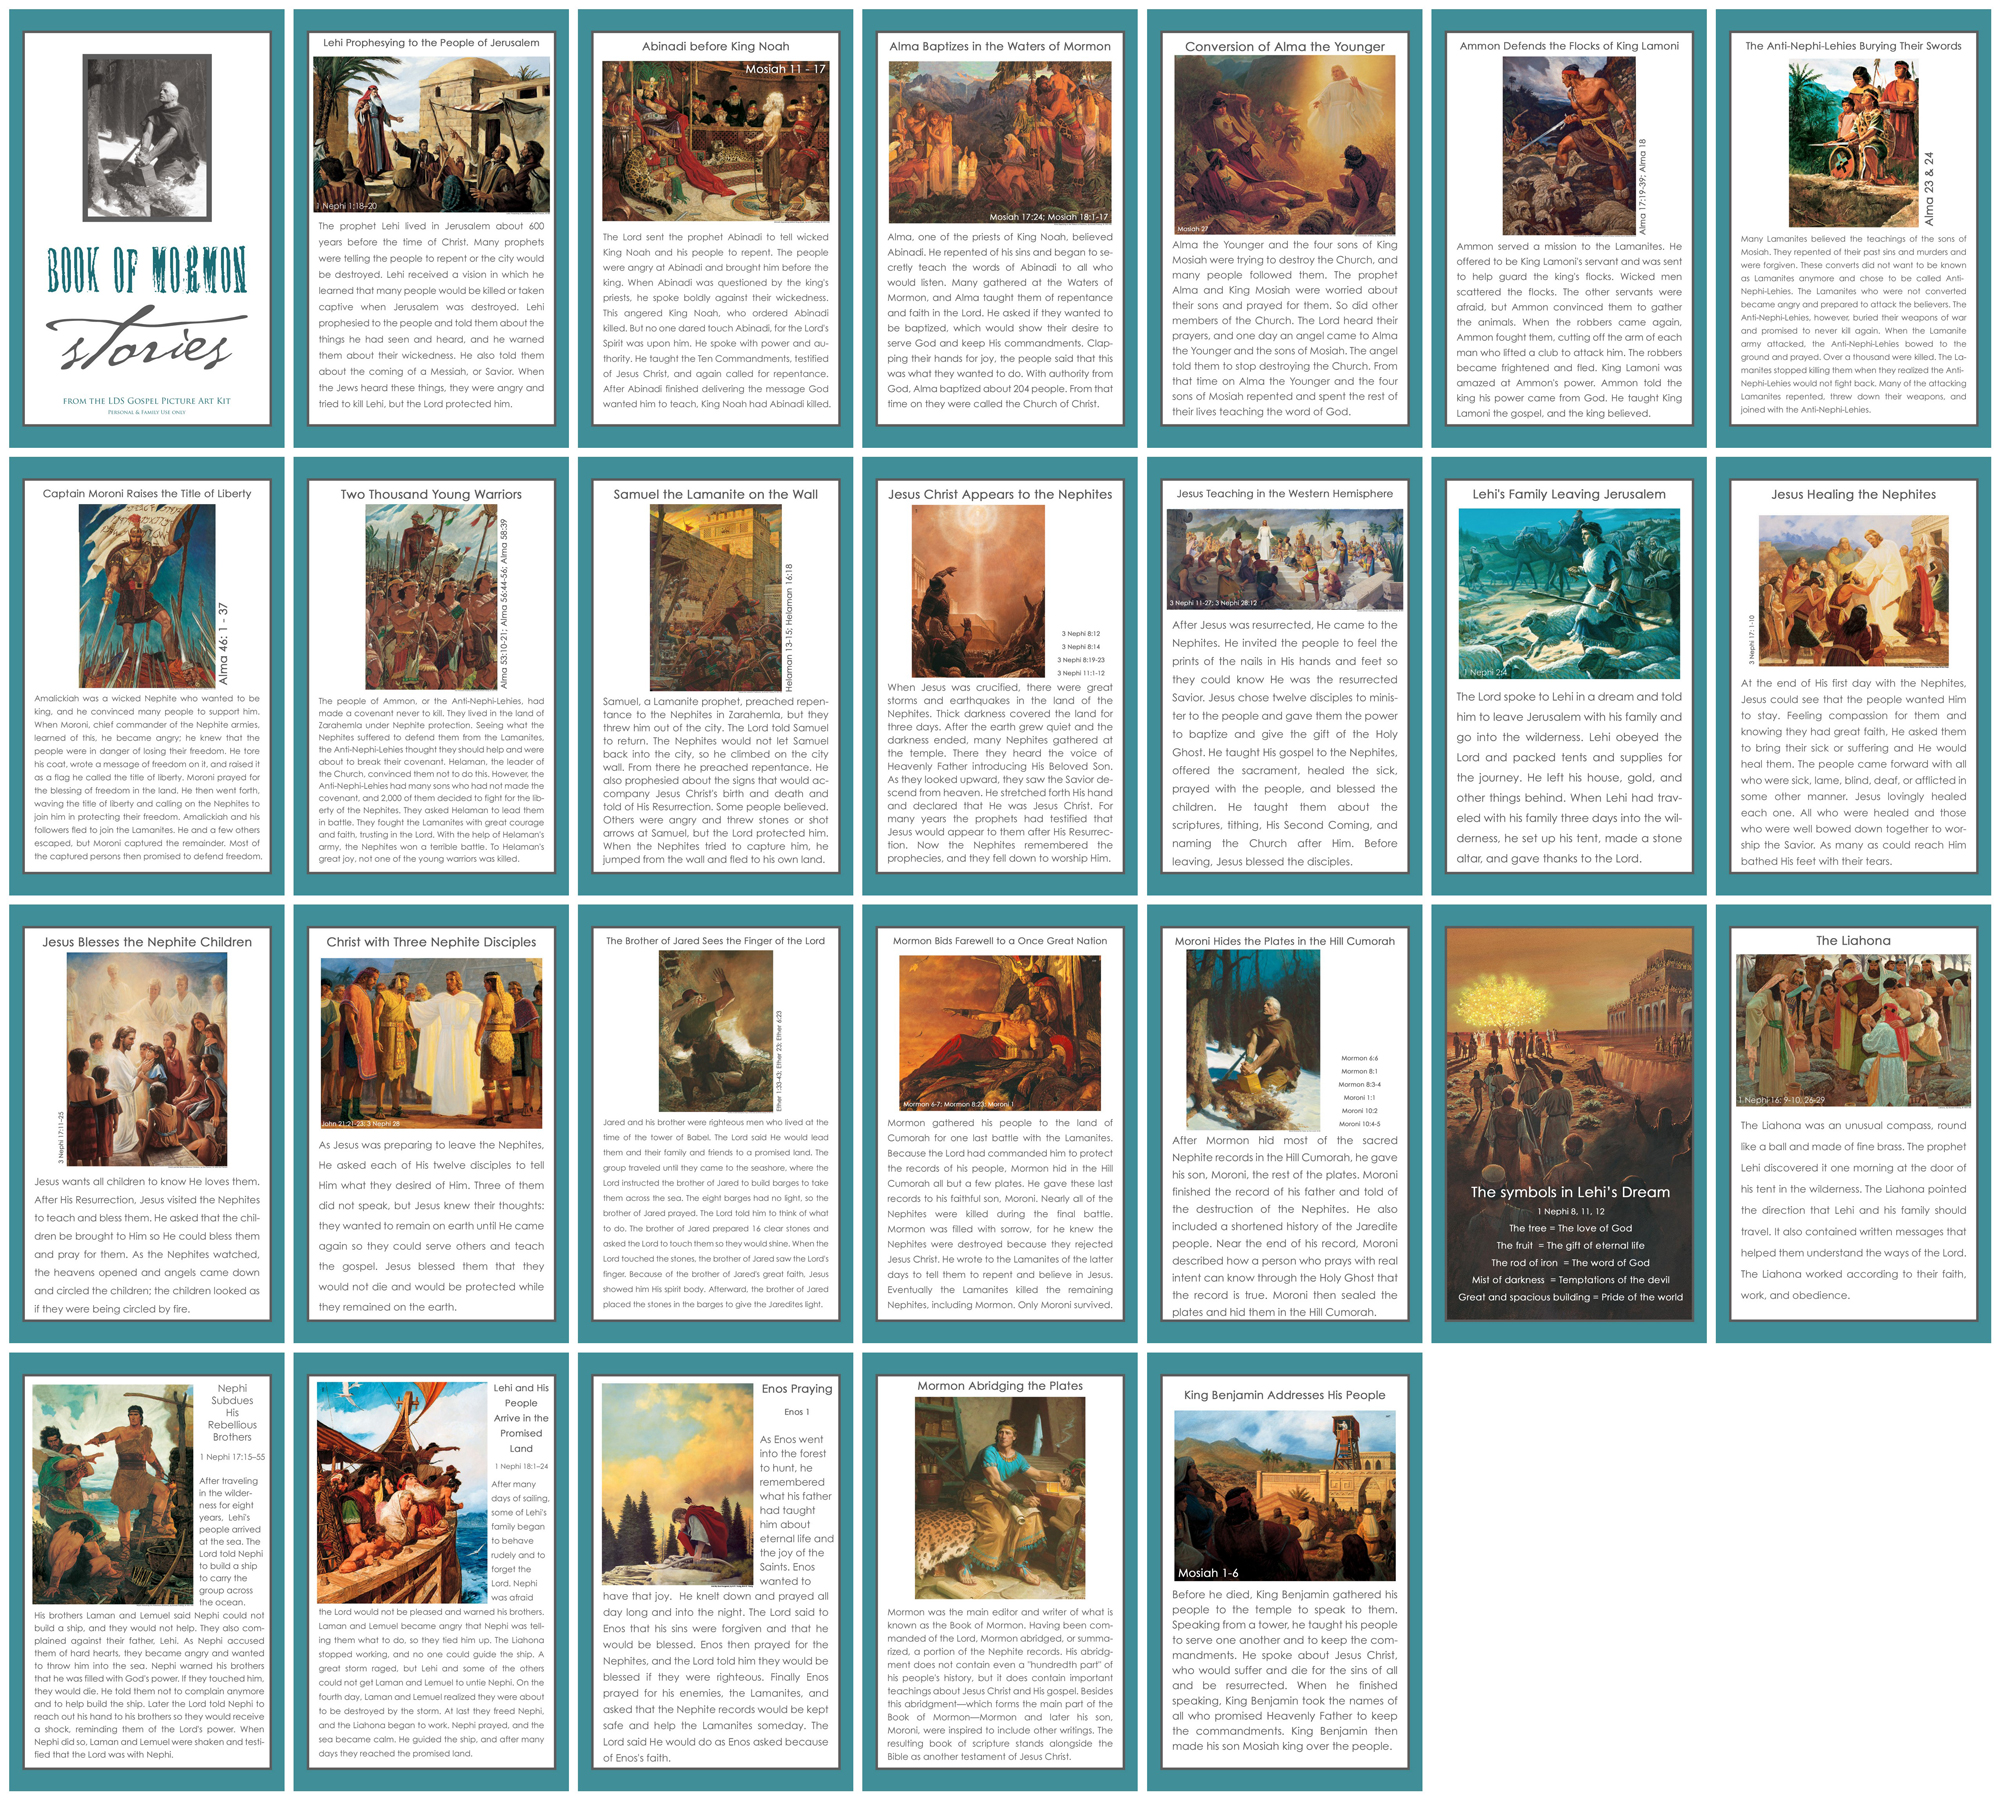 This Is The Sample Of What My Book Looks Like After Images Are Inserted